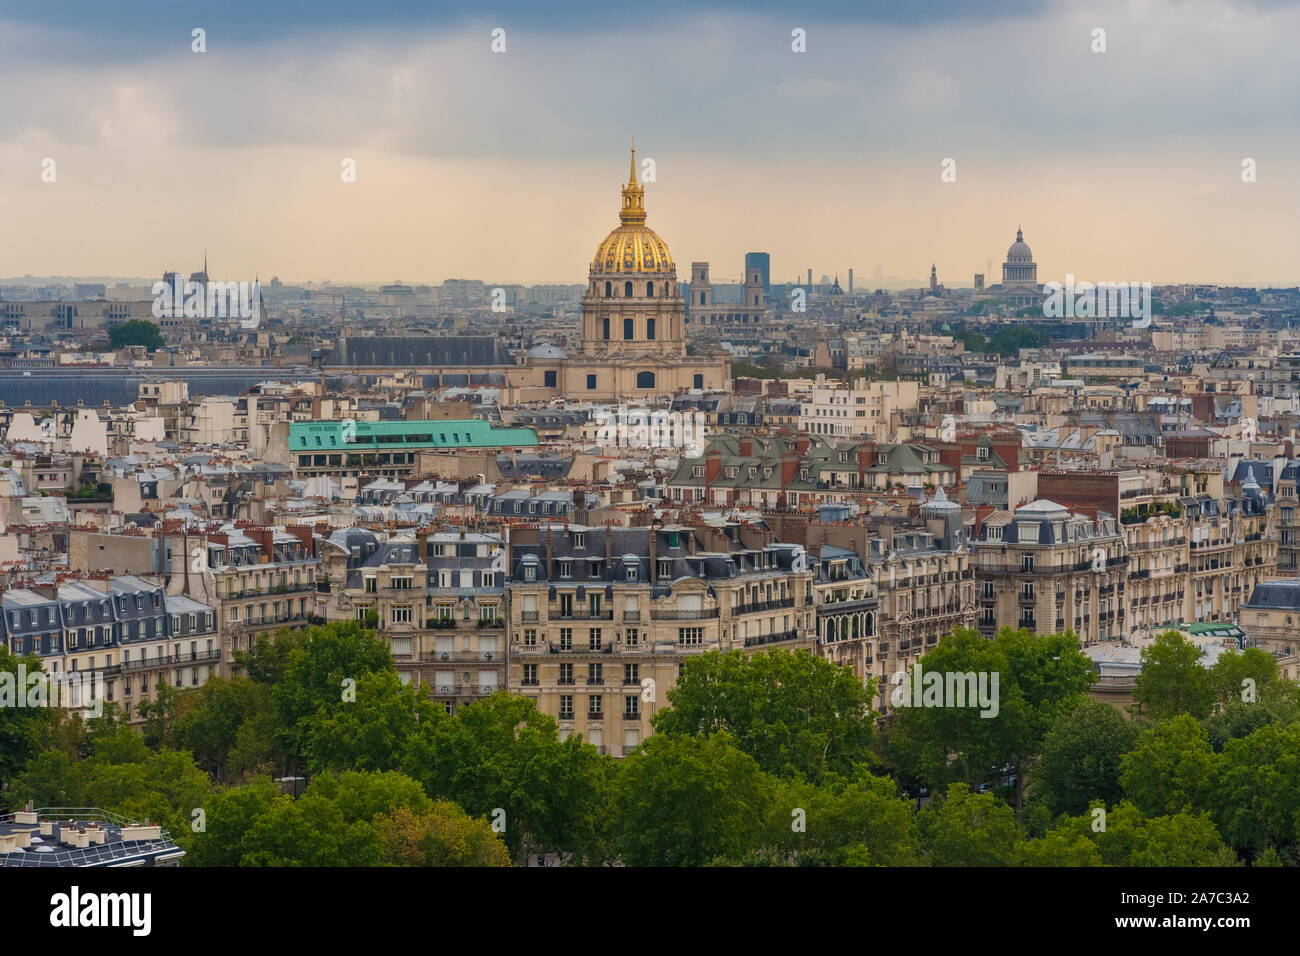 Beautiful aerial cityscape view of Paris with the golden dome of the Les Invalides complex surrounded by the typical Parisian residential buildings on... Stock Photo